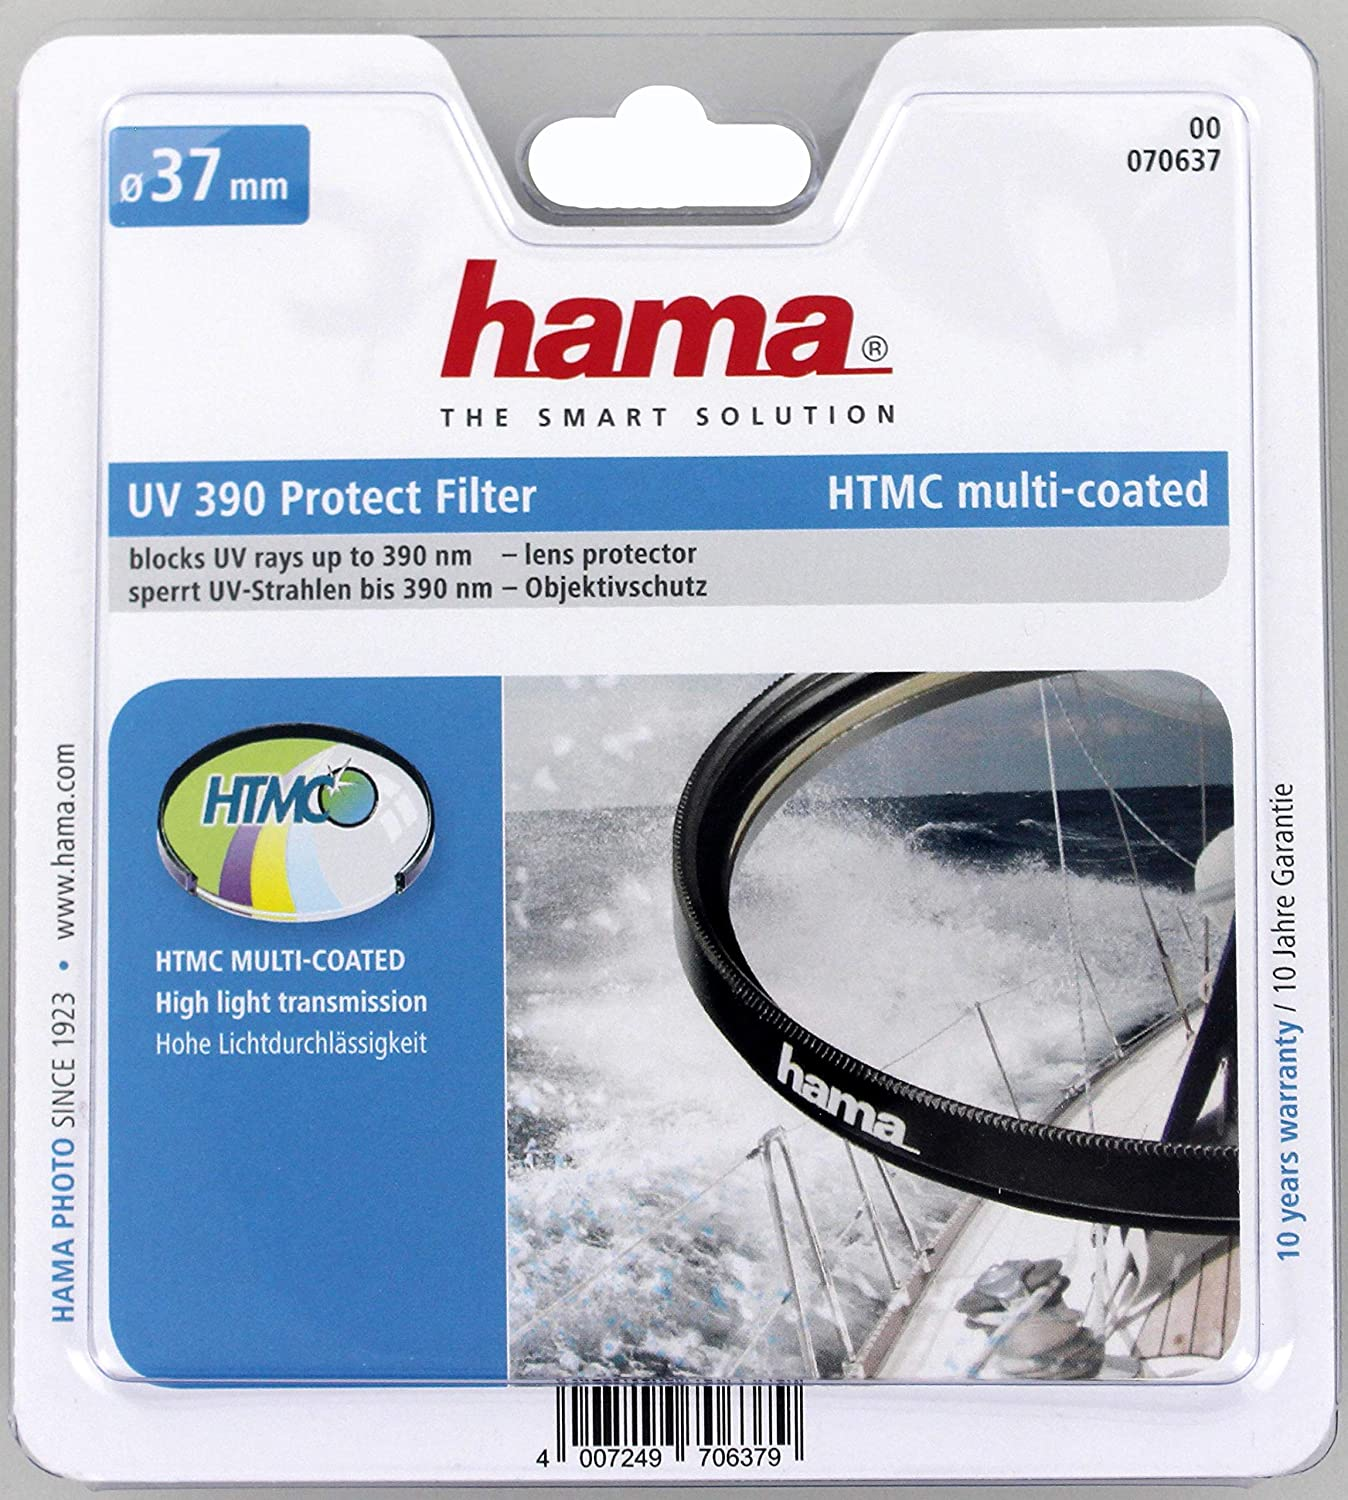 Hama 070637 Filtro UV HTMC 390 O-Haze Color Transparente 37.0 mm